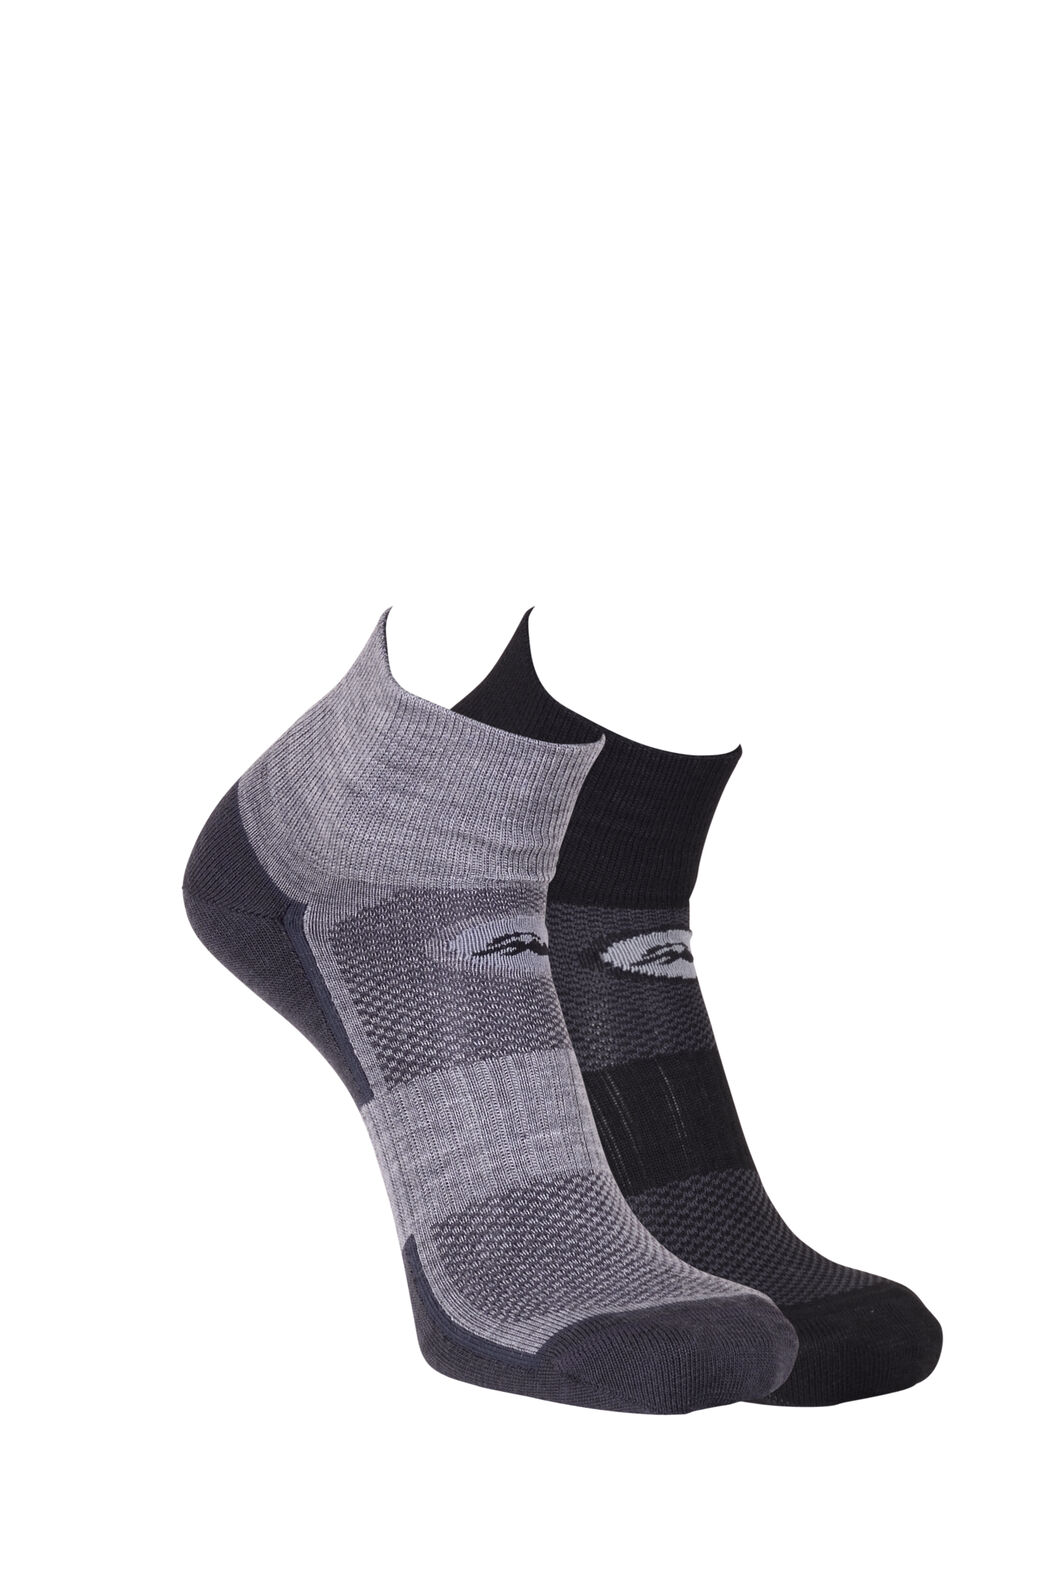 Macpac Merino Blend Quarter Socks (2 Pack), Black/Grey Marle, hi-res